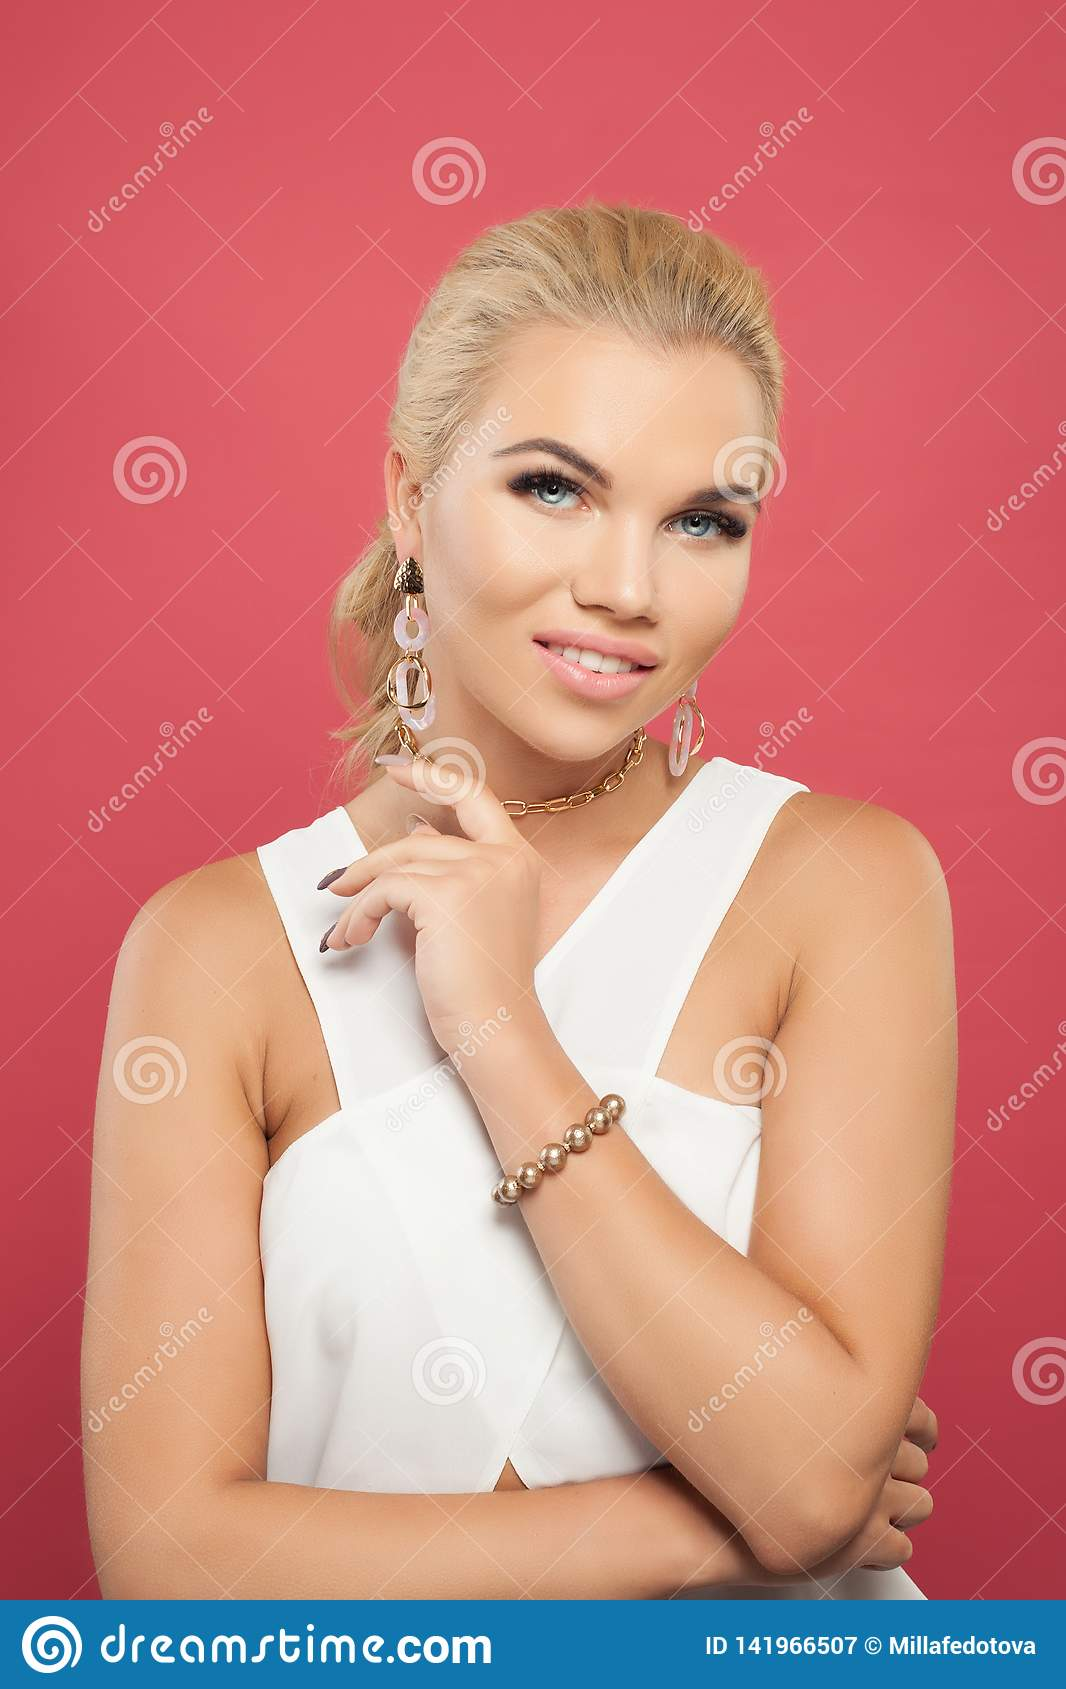 Gold jewelry woman portrait. Perfect girl in golden chain necklace, earrings and bracelet against colorful pink wall background